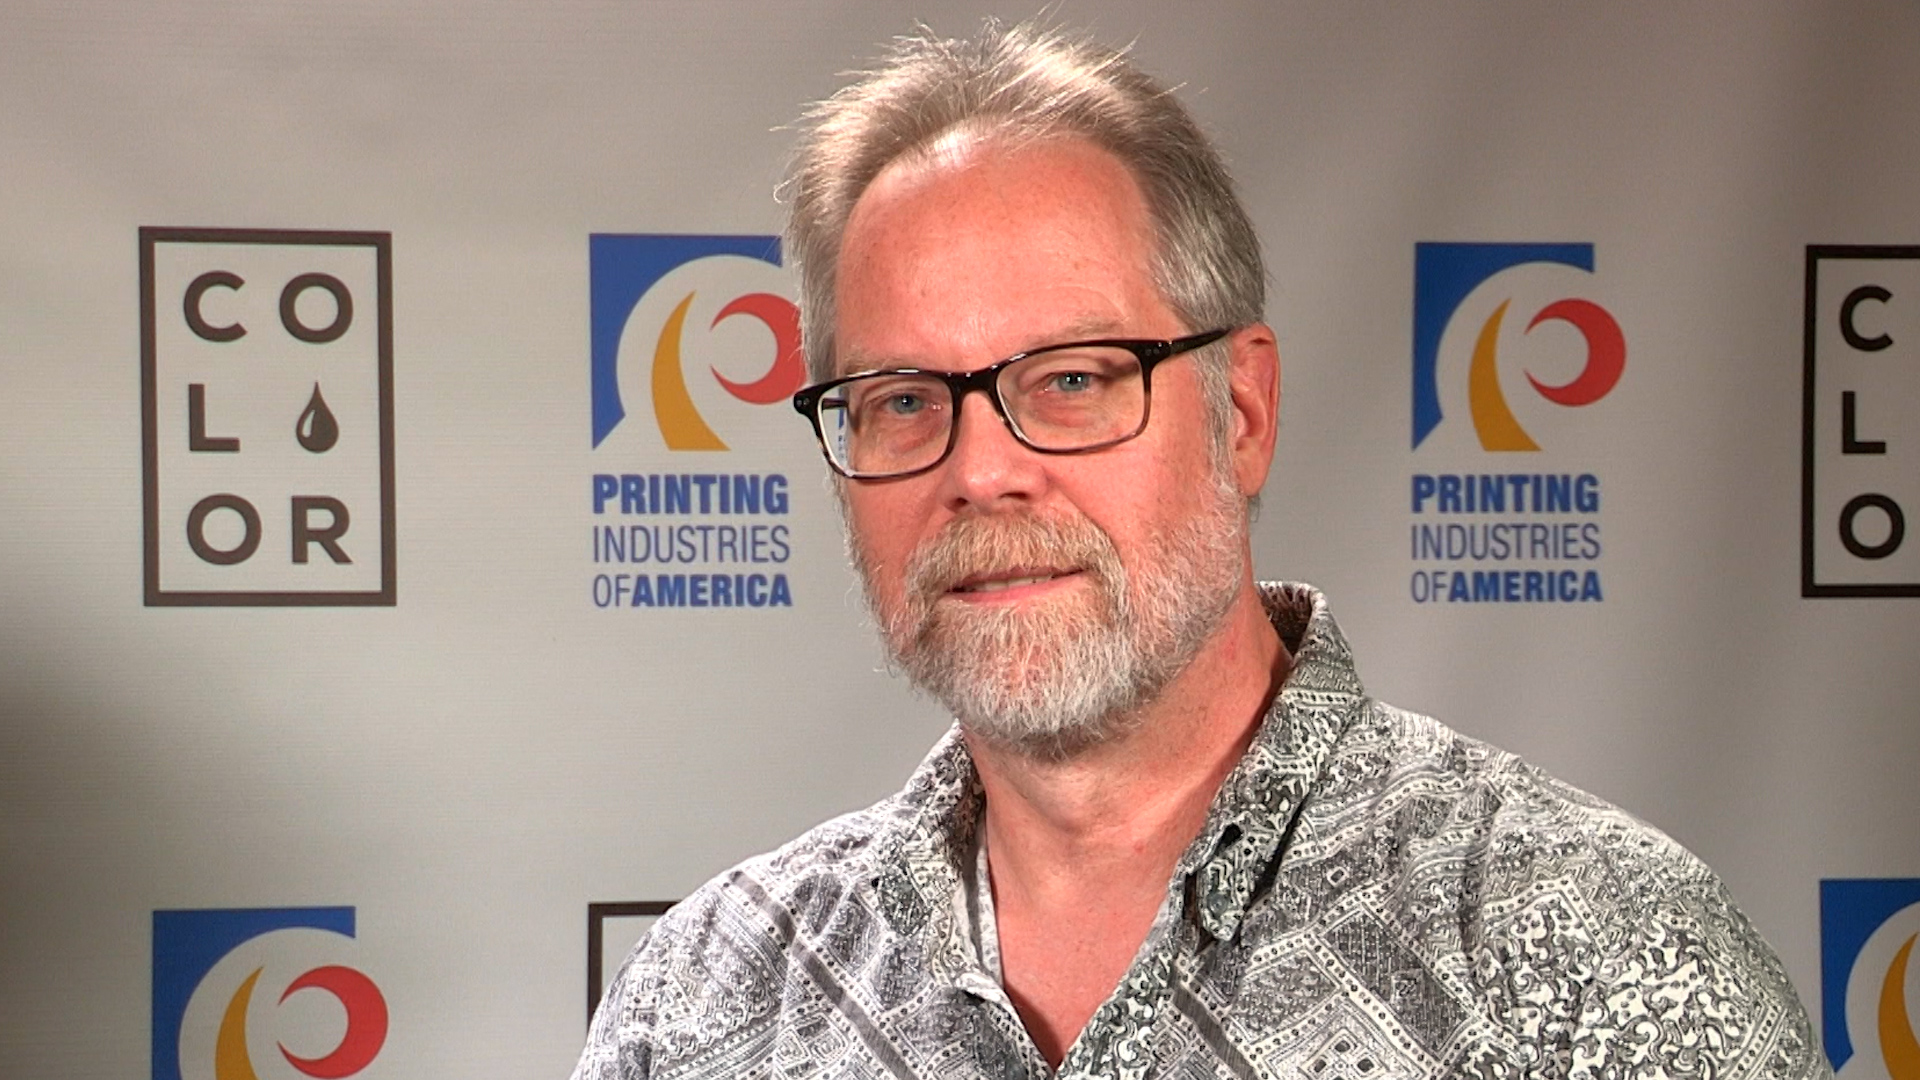 Video preview: What's the Best Way to Implement Statistical Process Control in Printing?